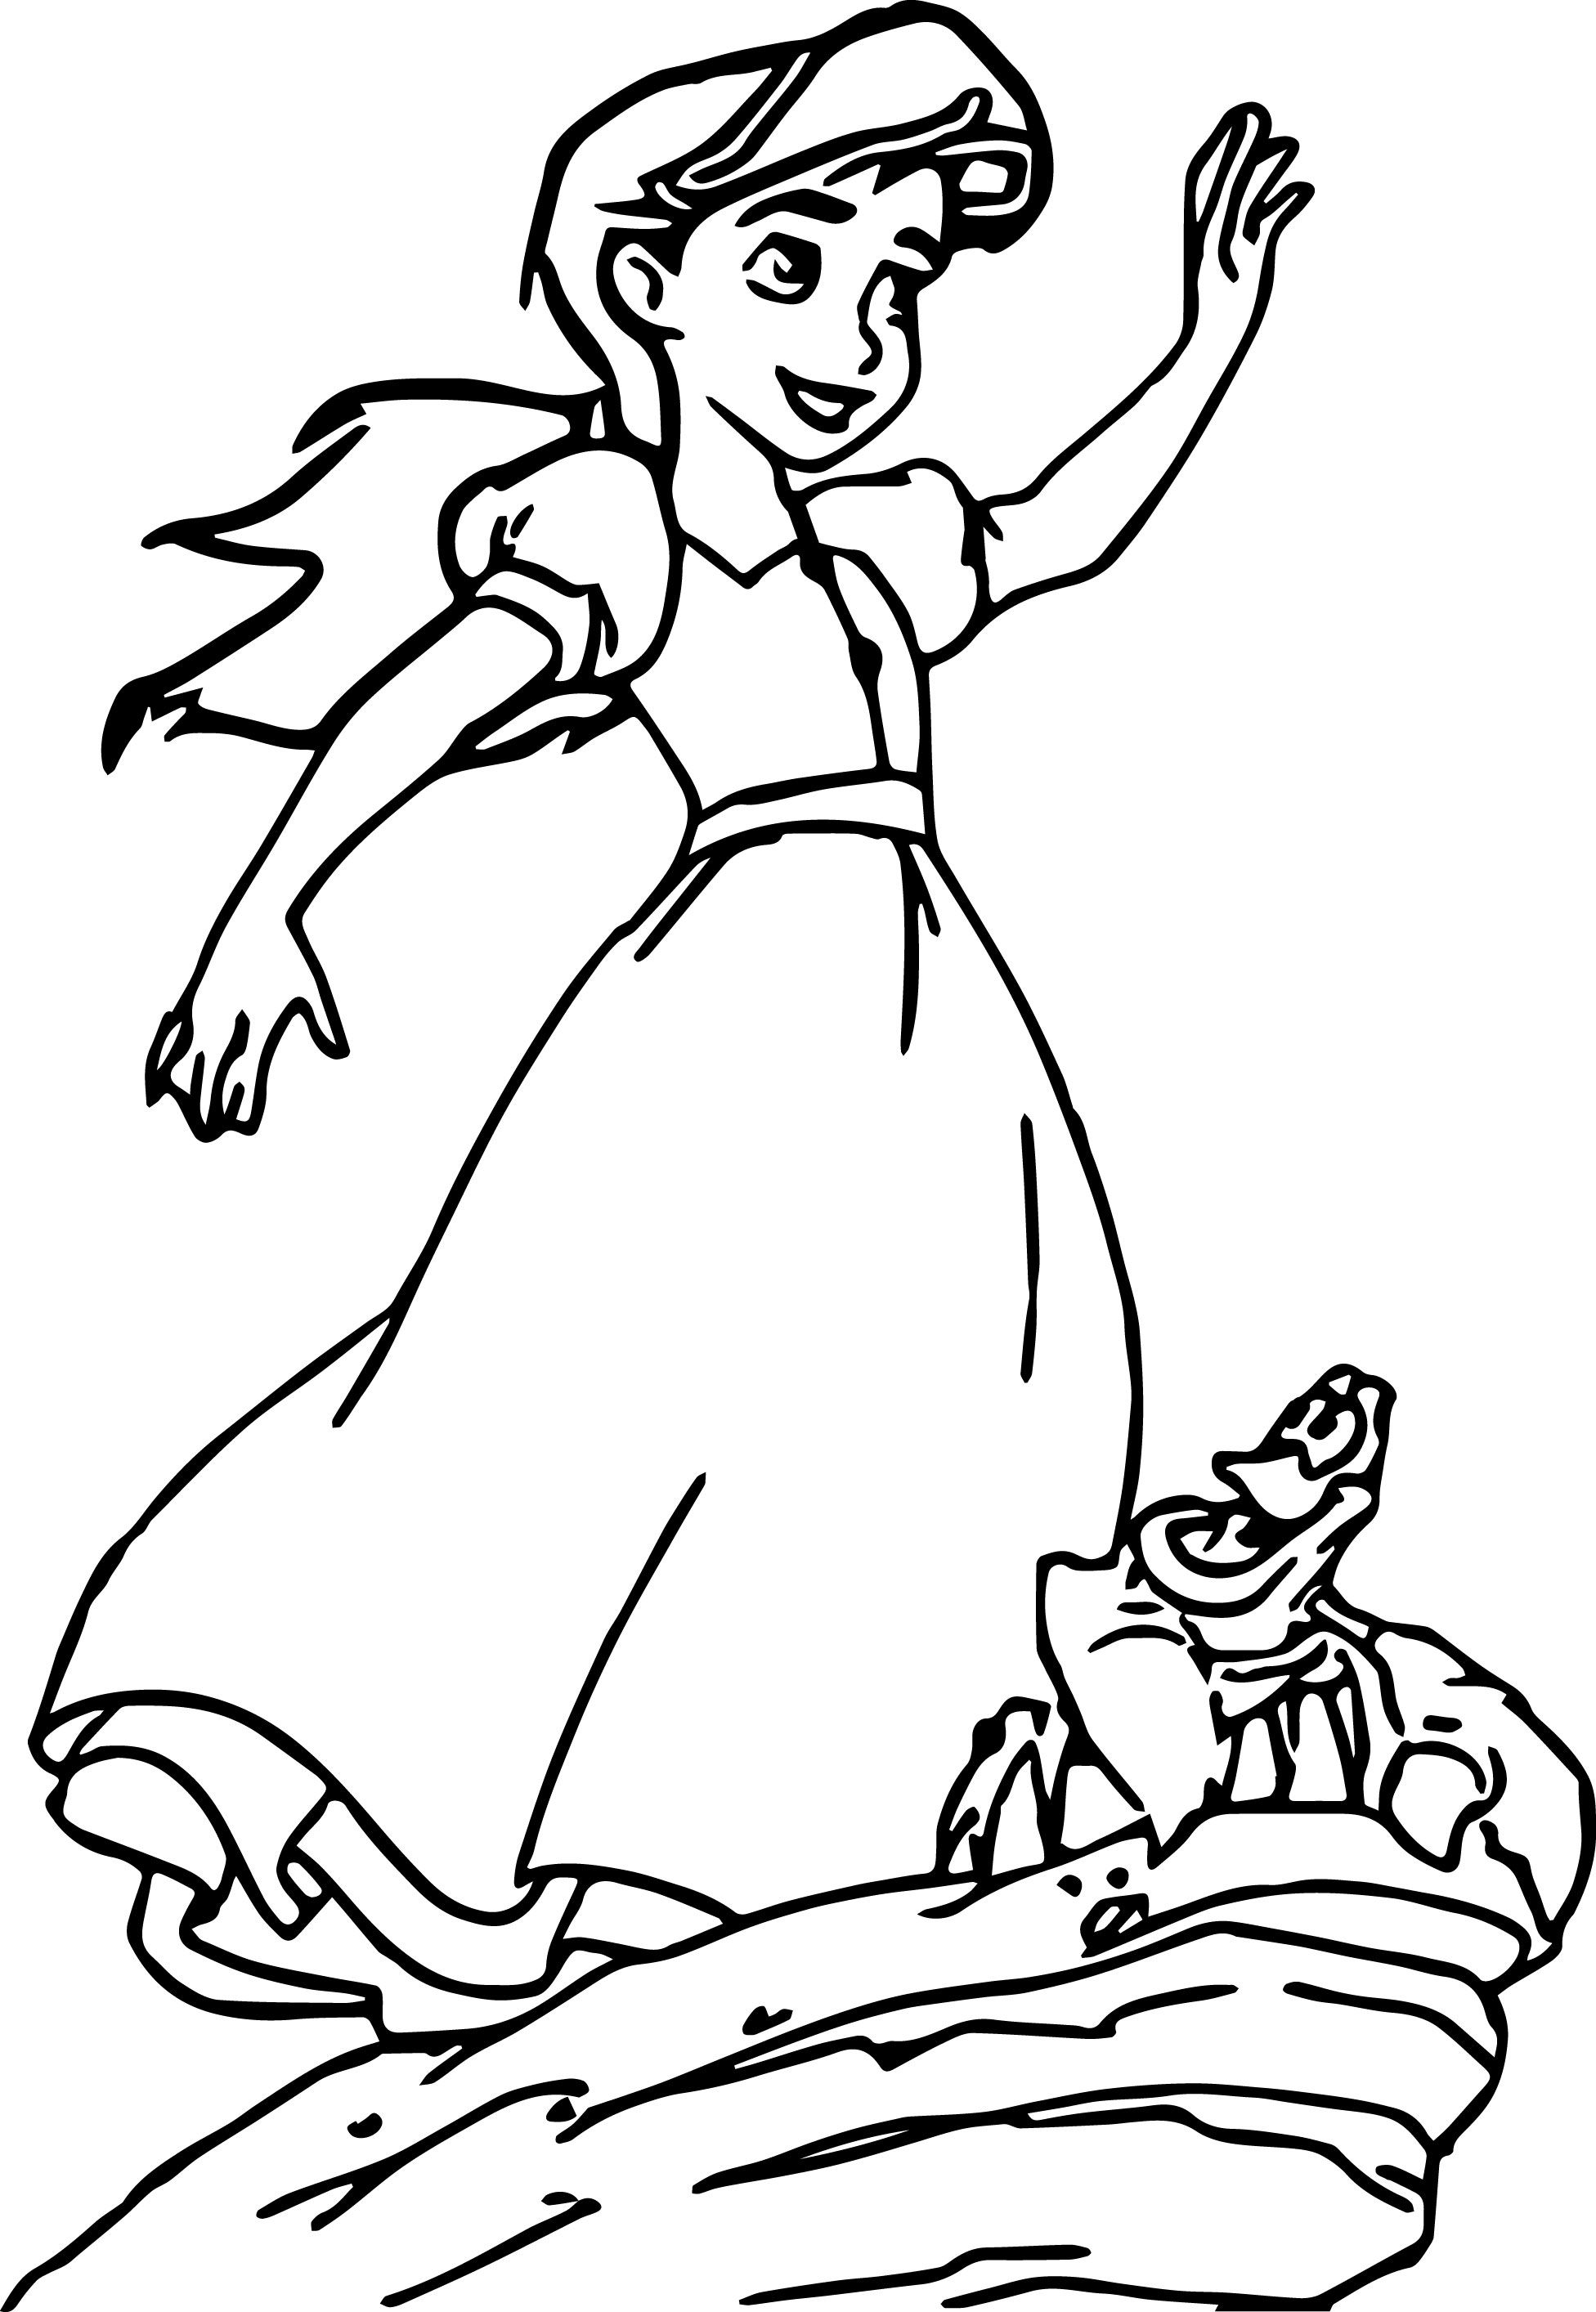 the little mermaid 2 coloring pages the little mermaid 2 coloring pages coloring home the pages coloring little mermaid 2